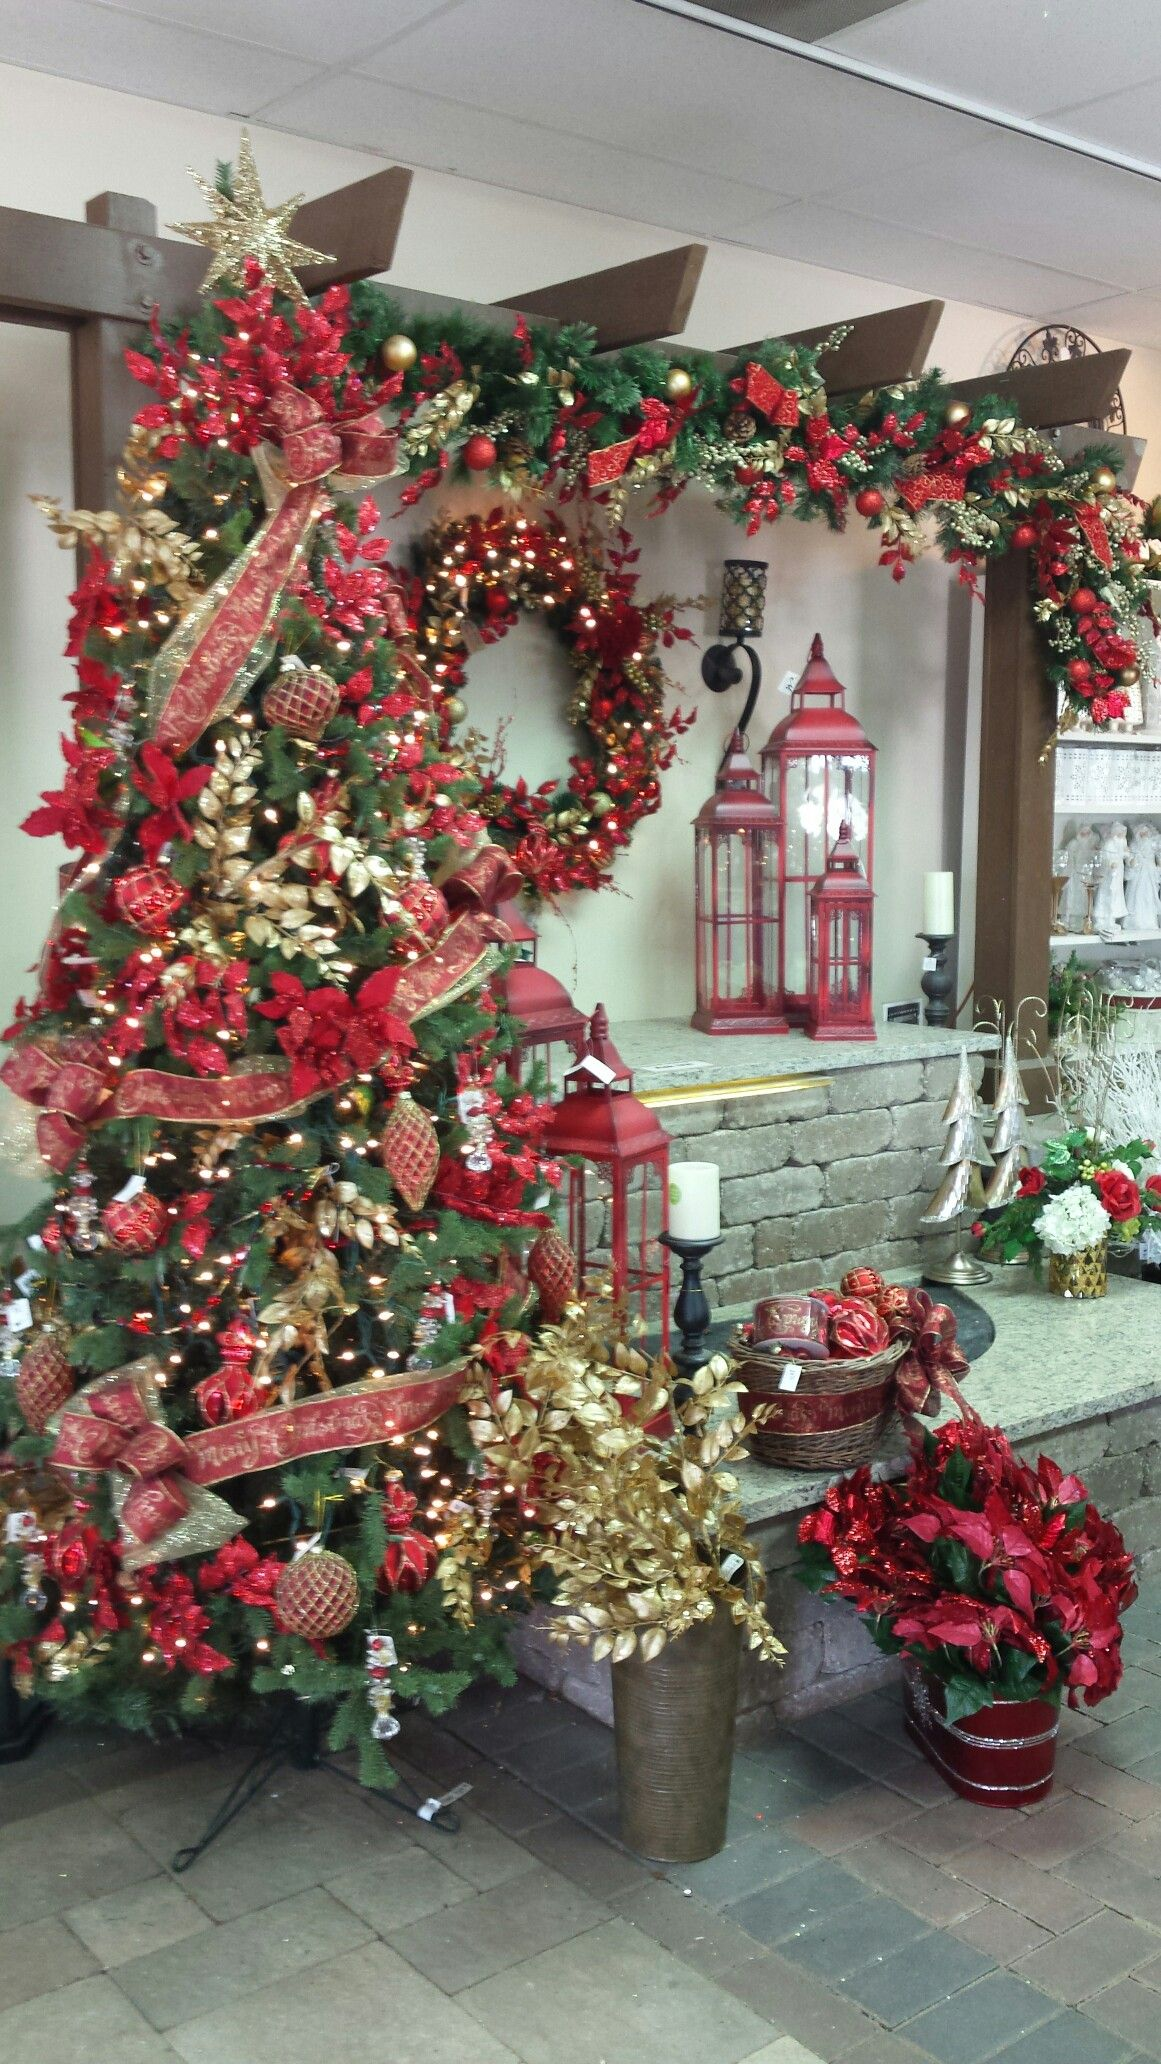 Christmas decorations image by Melissa Haas on Grieder